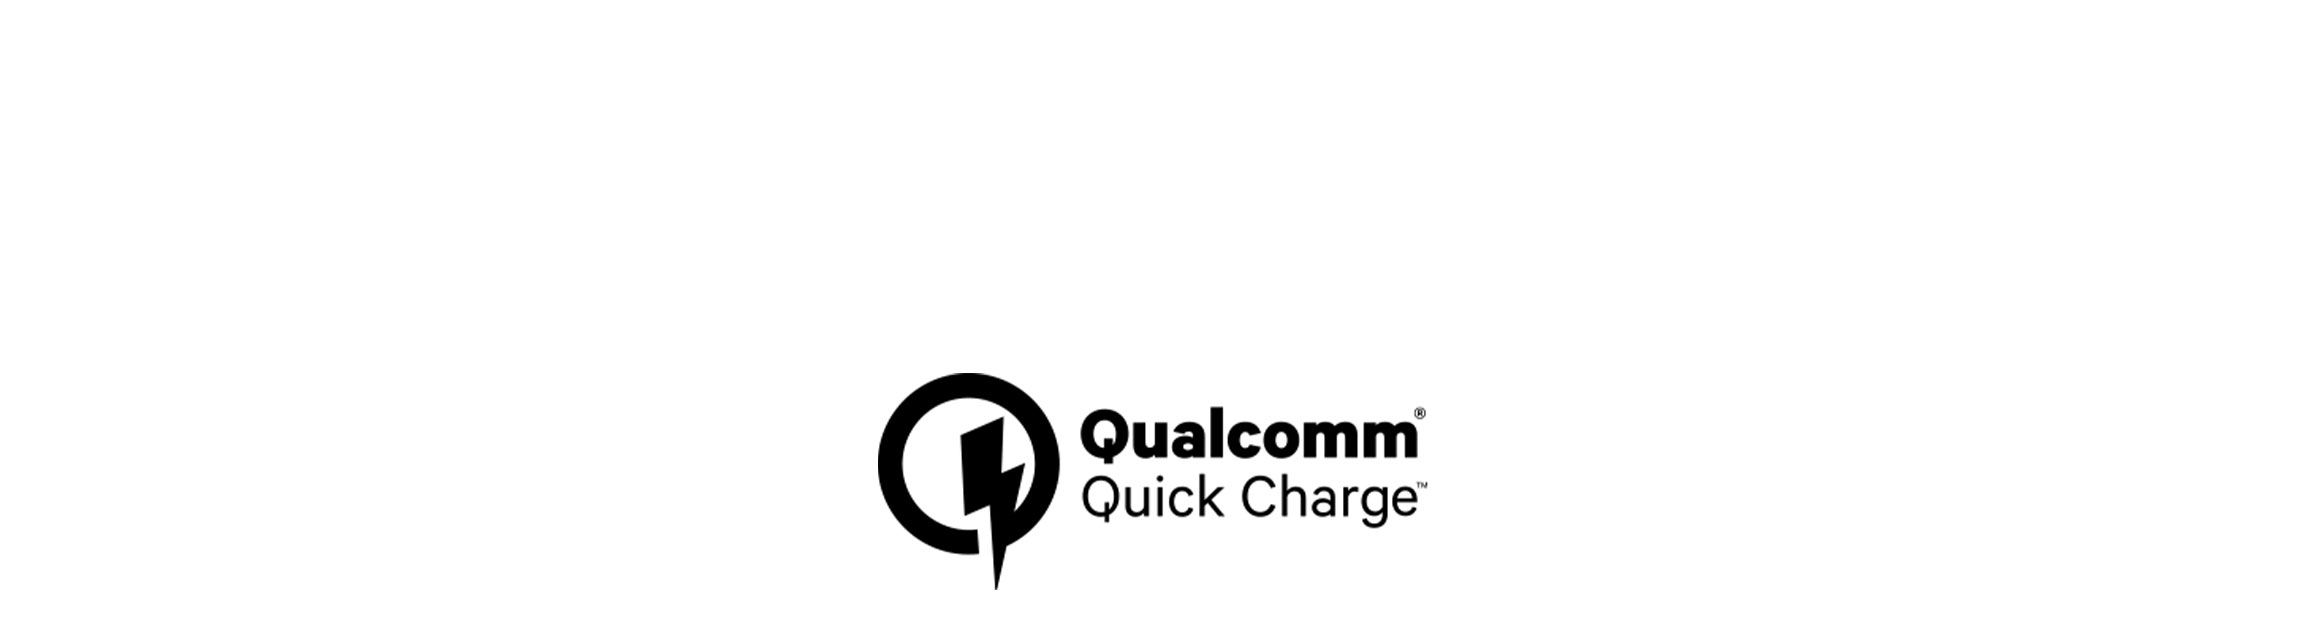 AT-QuickCharge-3.jpg